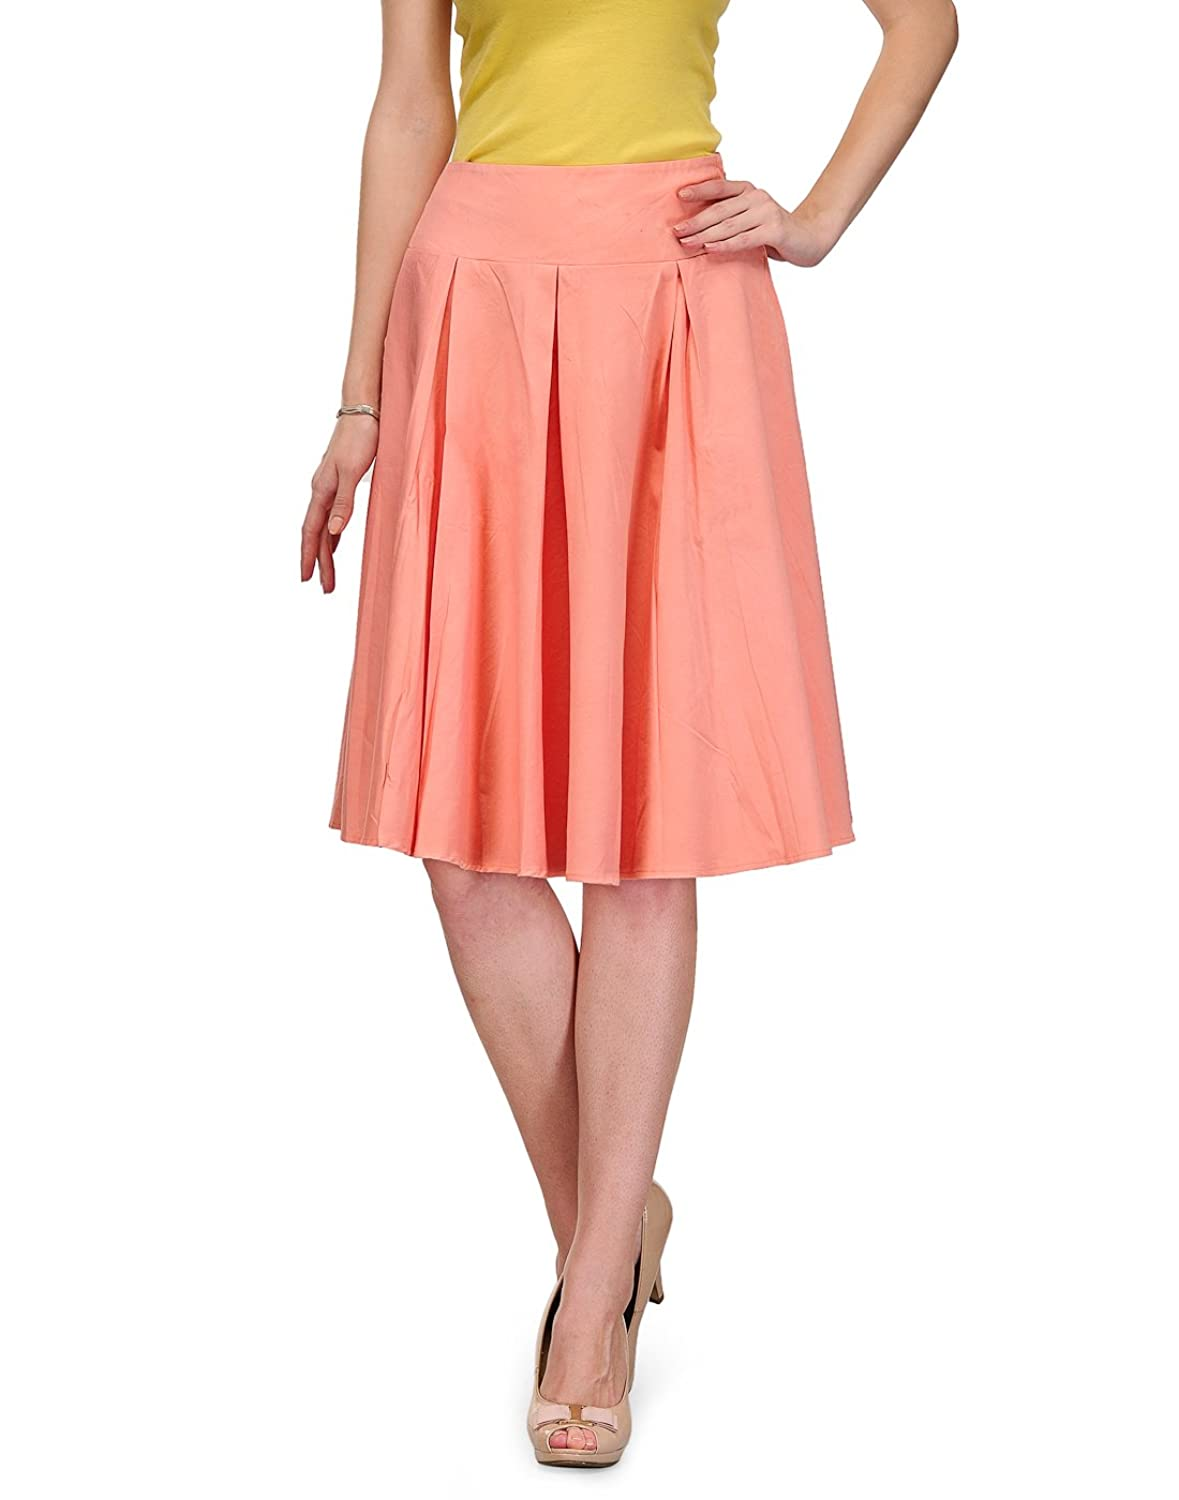 What do I wear this summer - Skirts - Women Dressing